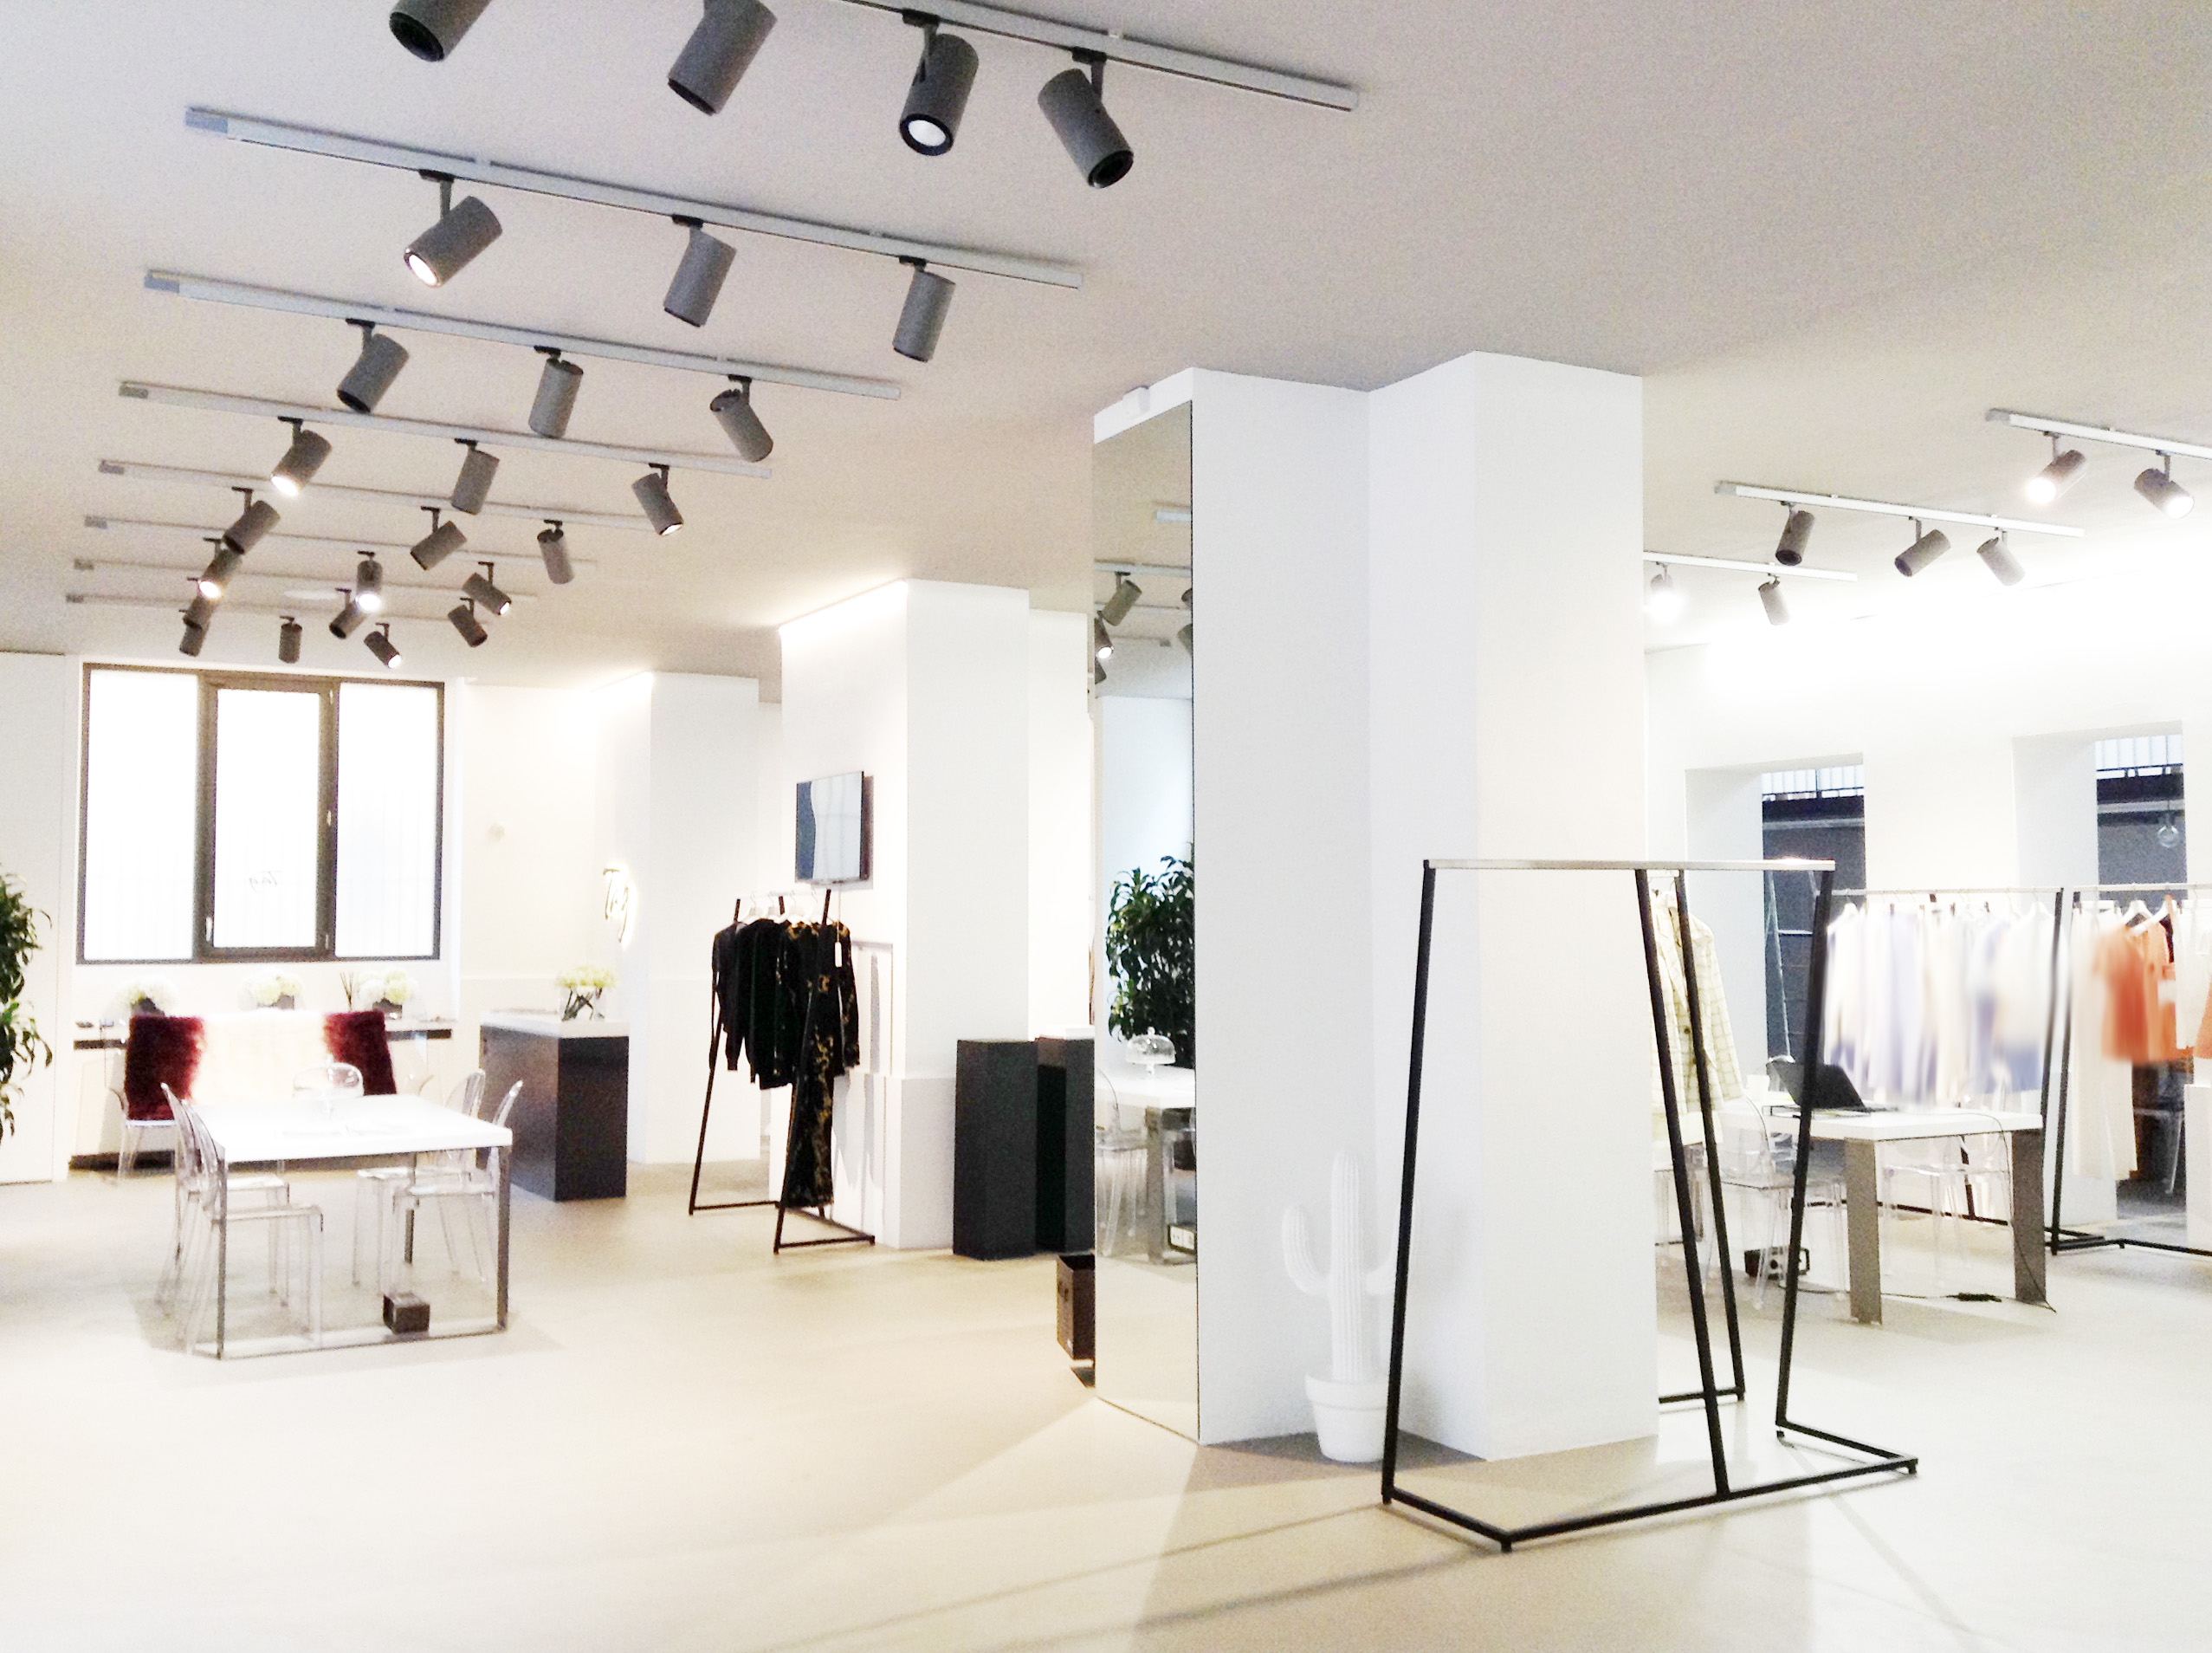 Spazio genova showroom noem alemn with spazio genova for Molinari arredamenti